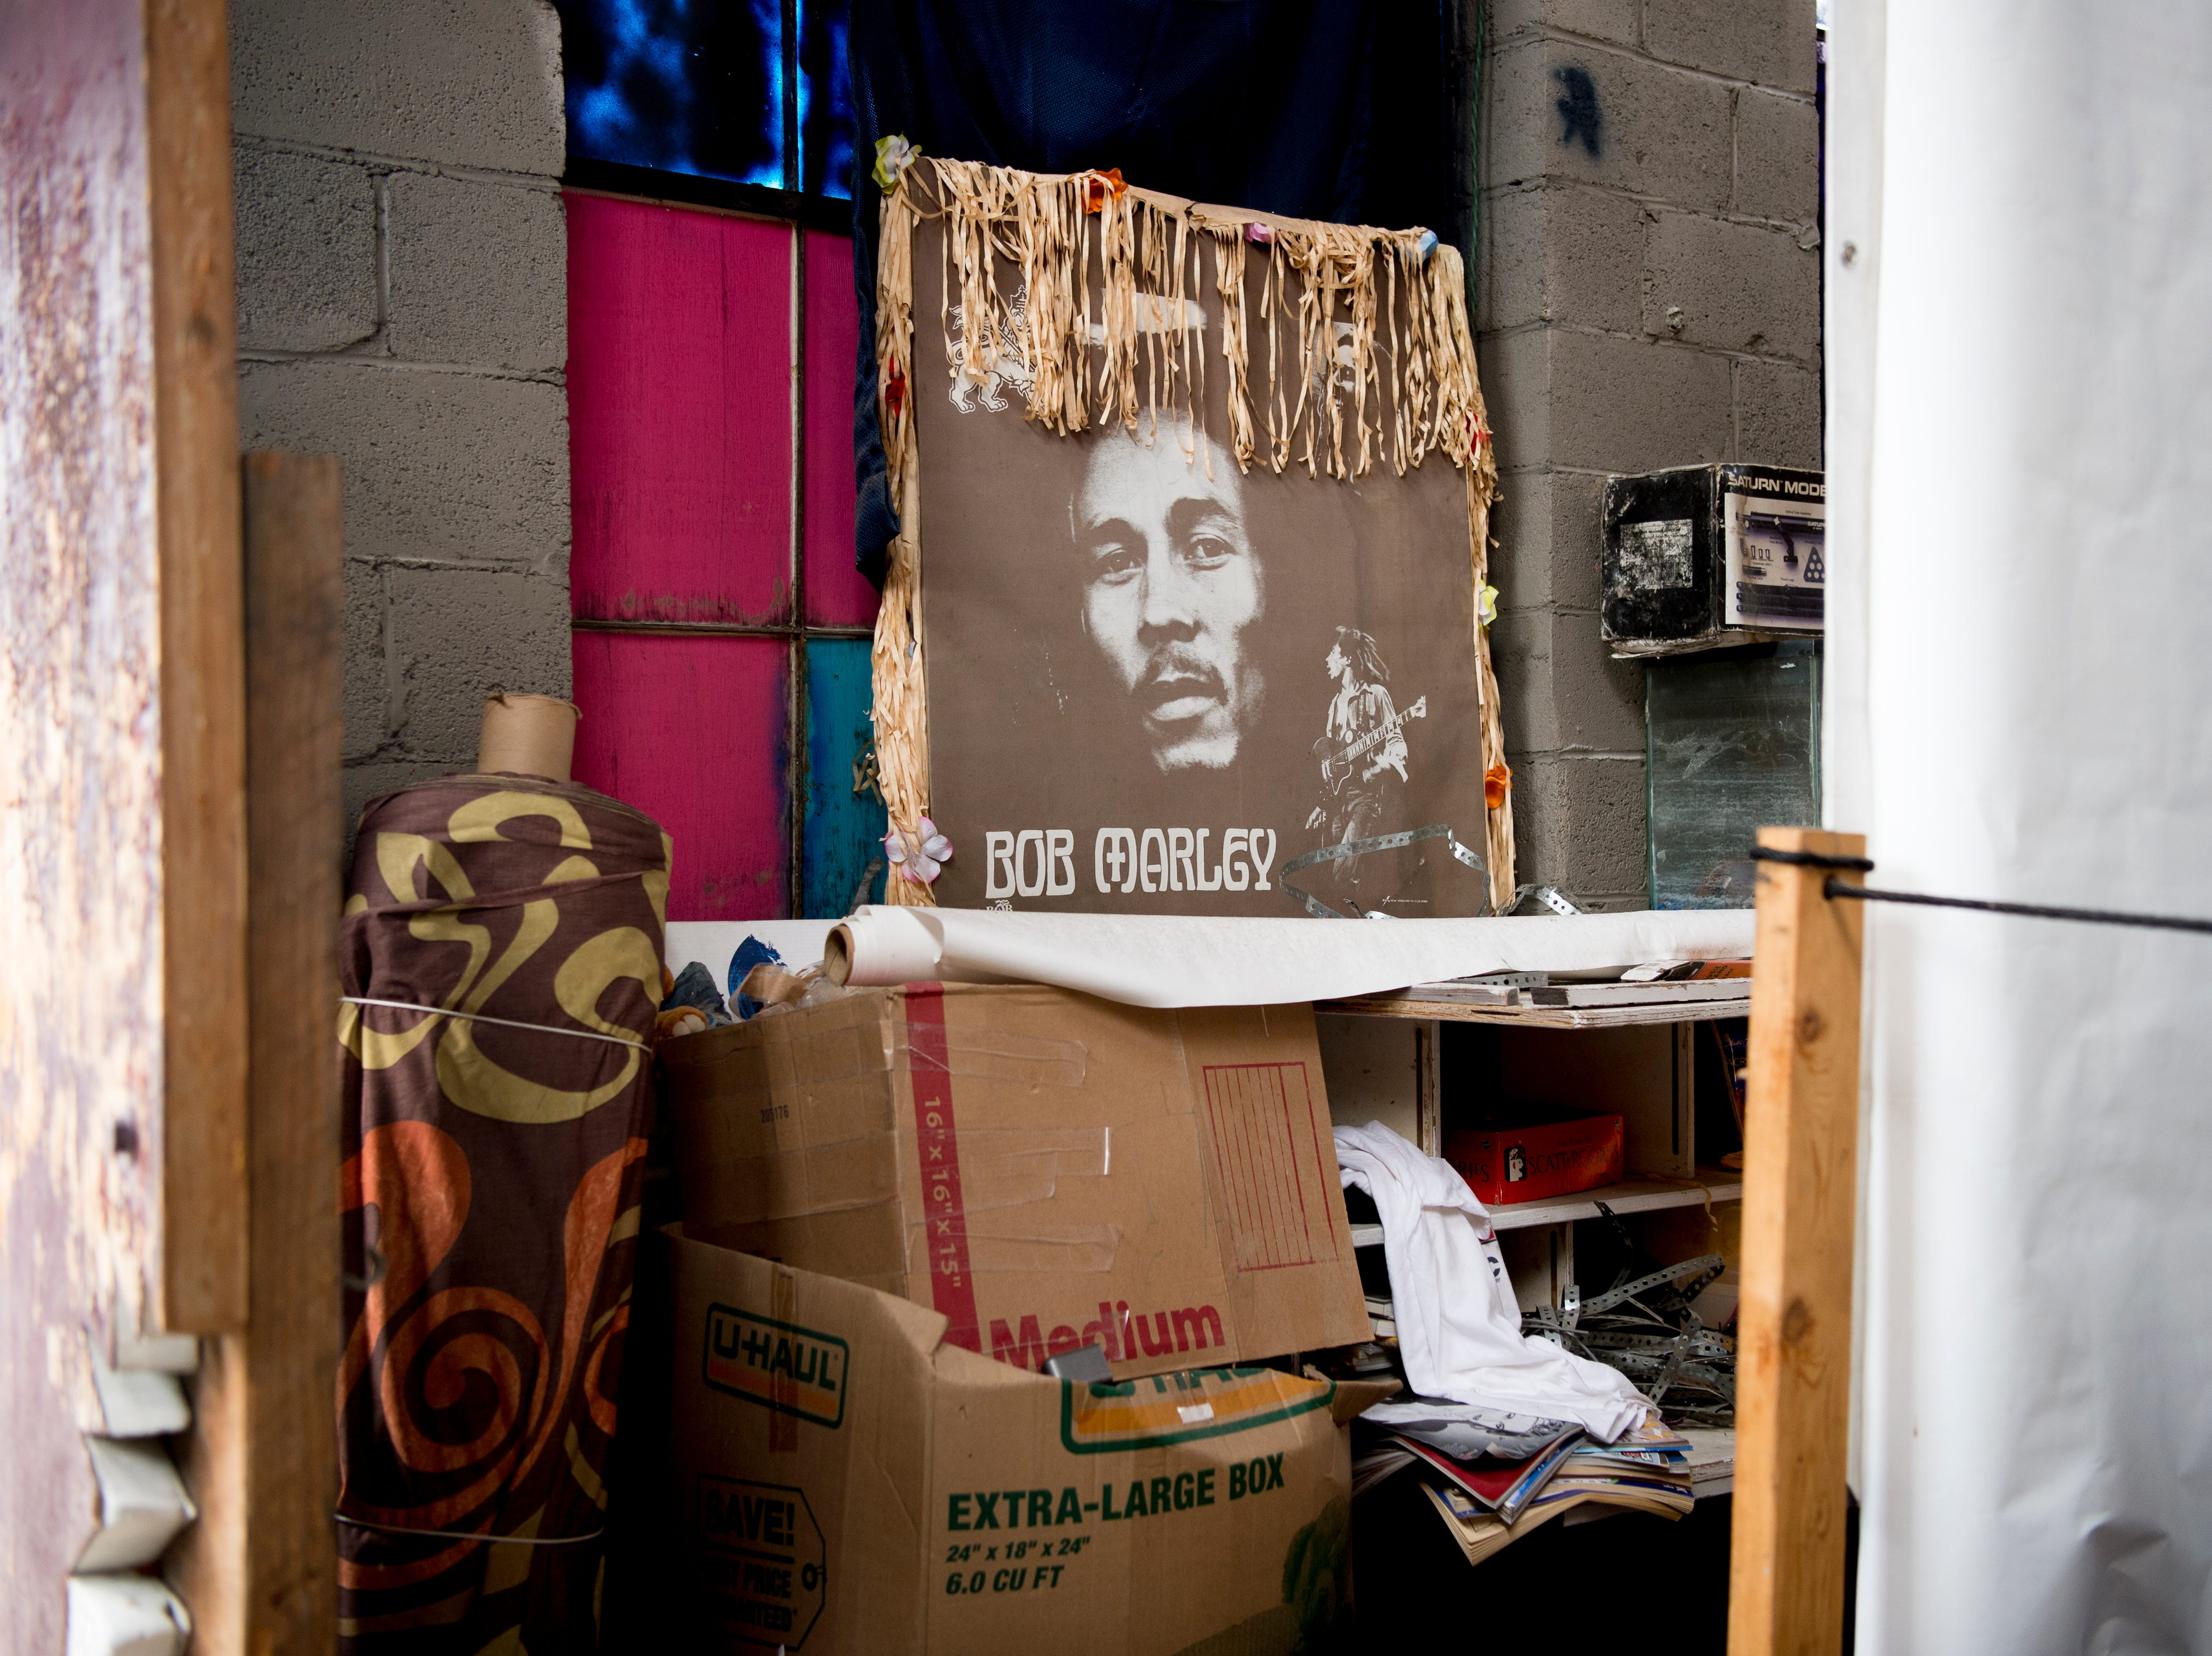 A poster of musical artist Bob Marley sits on a windowsill at Bar Marley in Knoxville, Tennessee on Thursday, February 14, 2019. The Caribbean-themed Bar Marley is facing possible acquisition and condemnation by KCDC due to code violations.